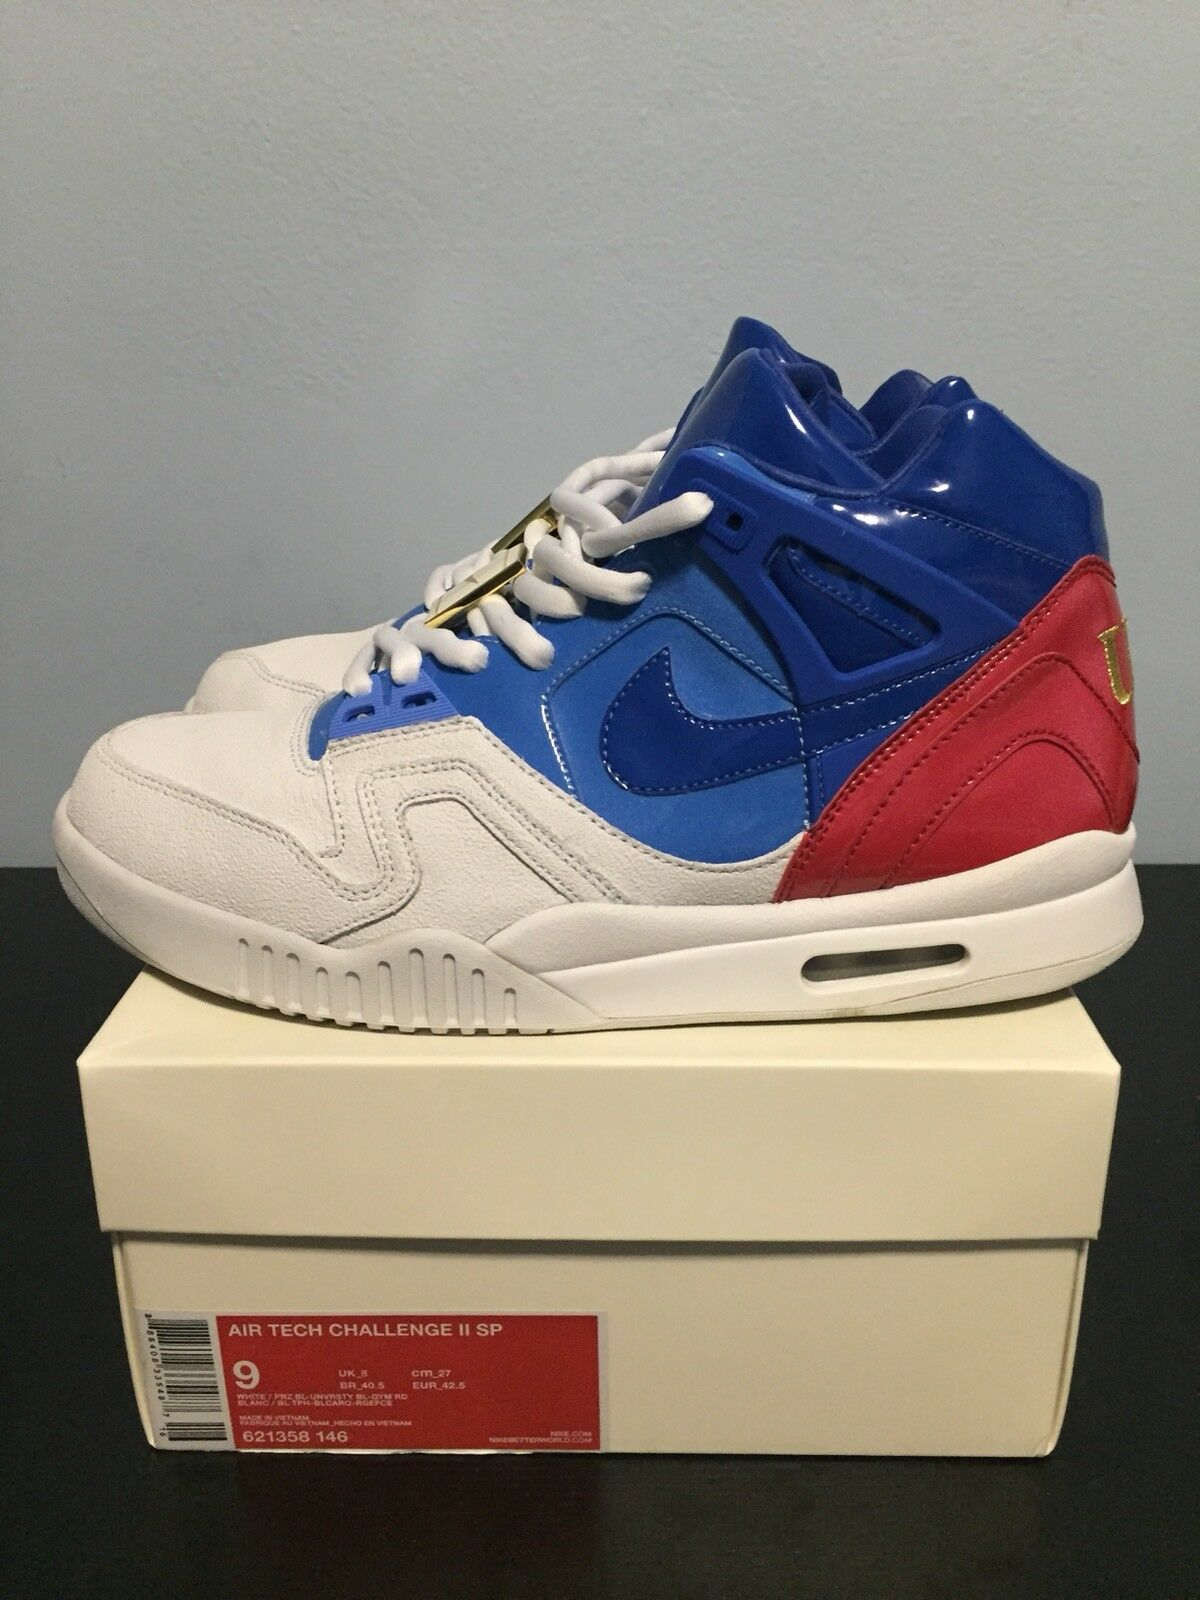 Nike Air Tech Challenge II 2 USA US Open Comfortable